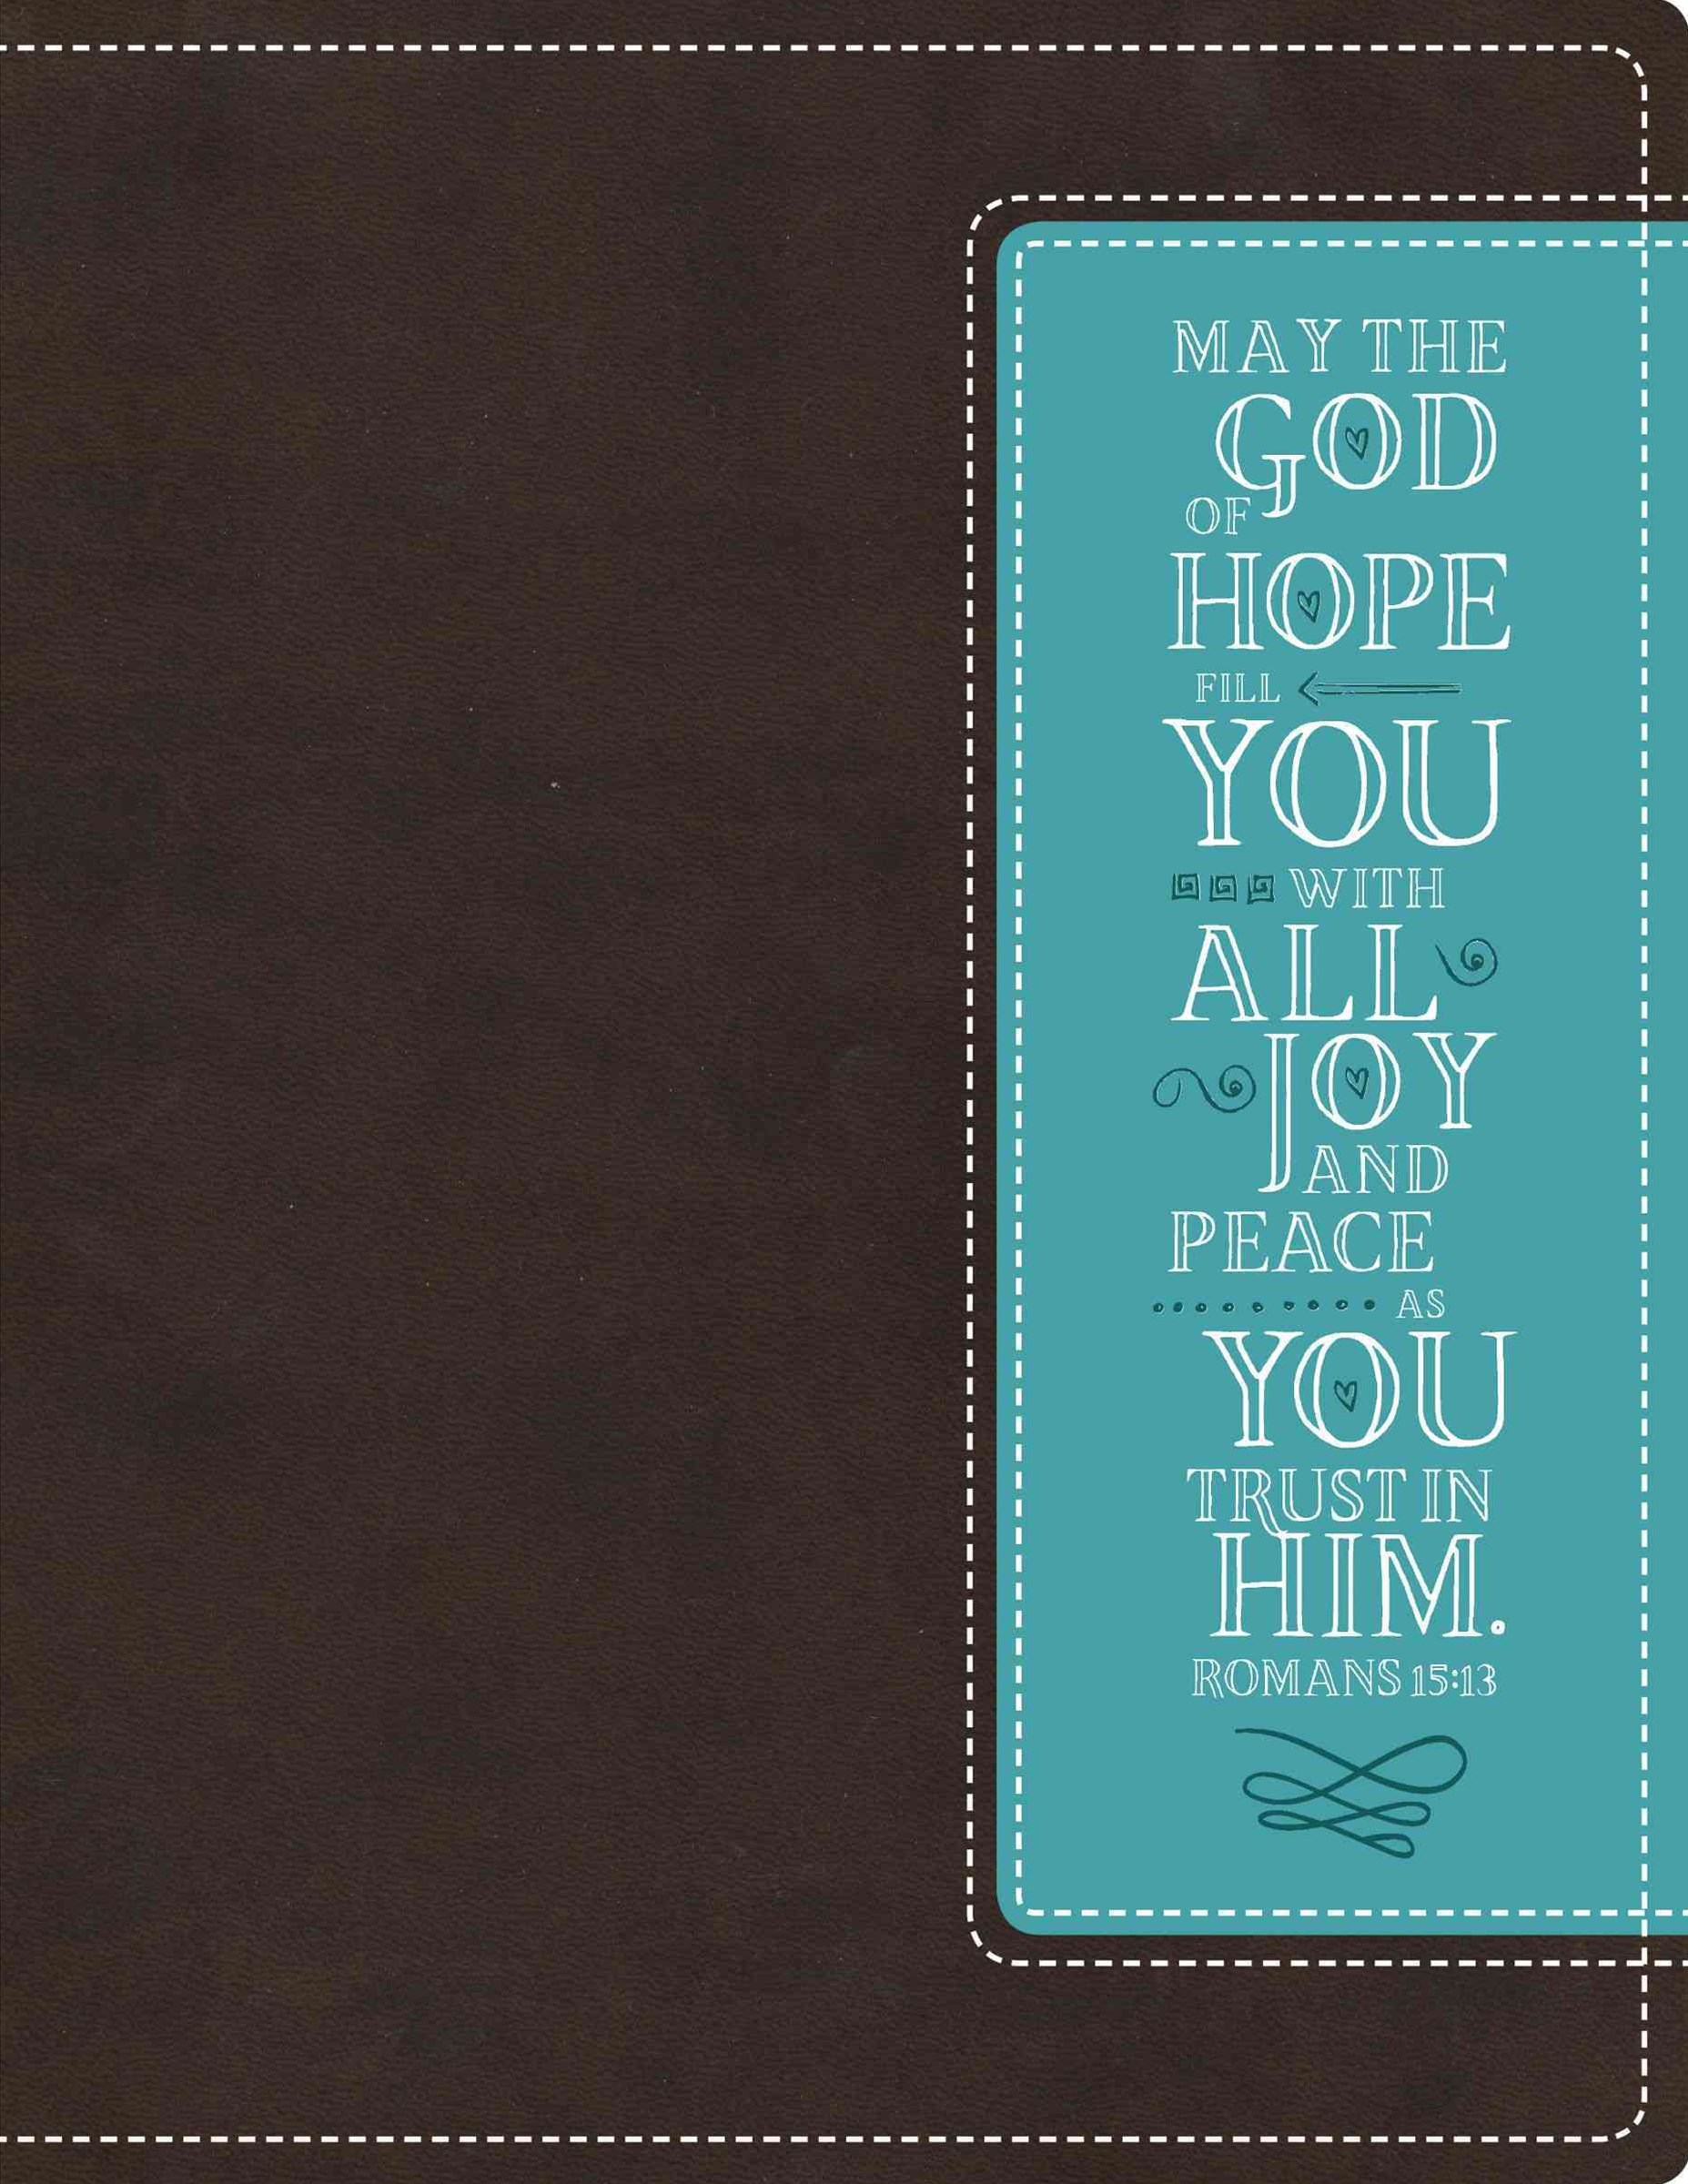 NIV Beautiful Word Bible [Italian Duo-Tone Chocolate/Turquoise]